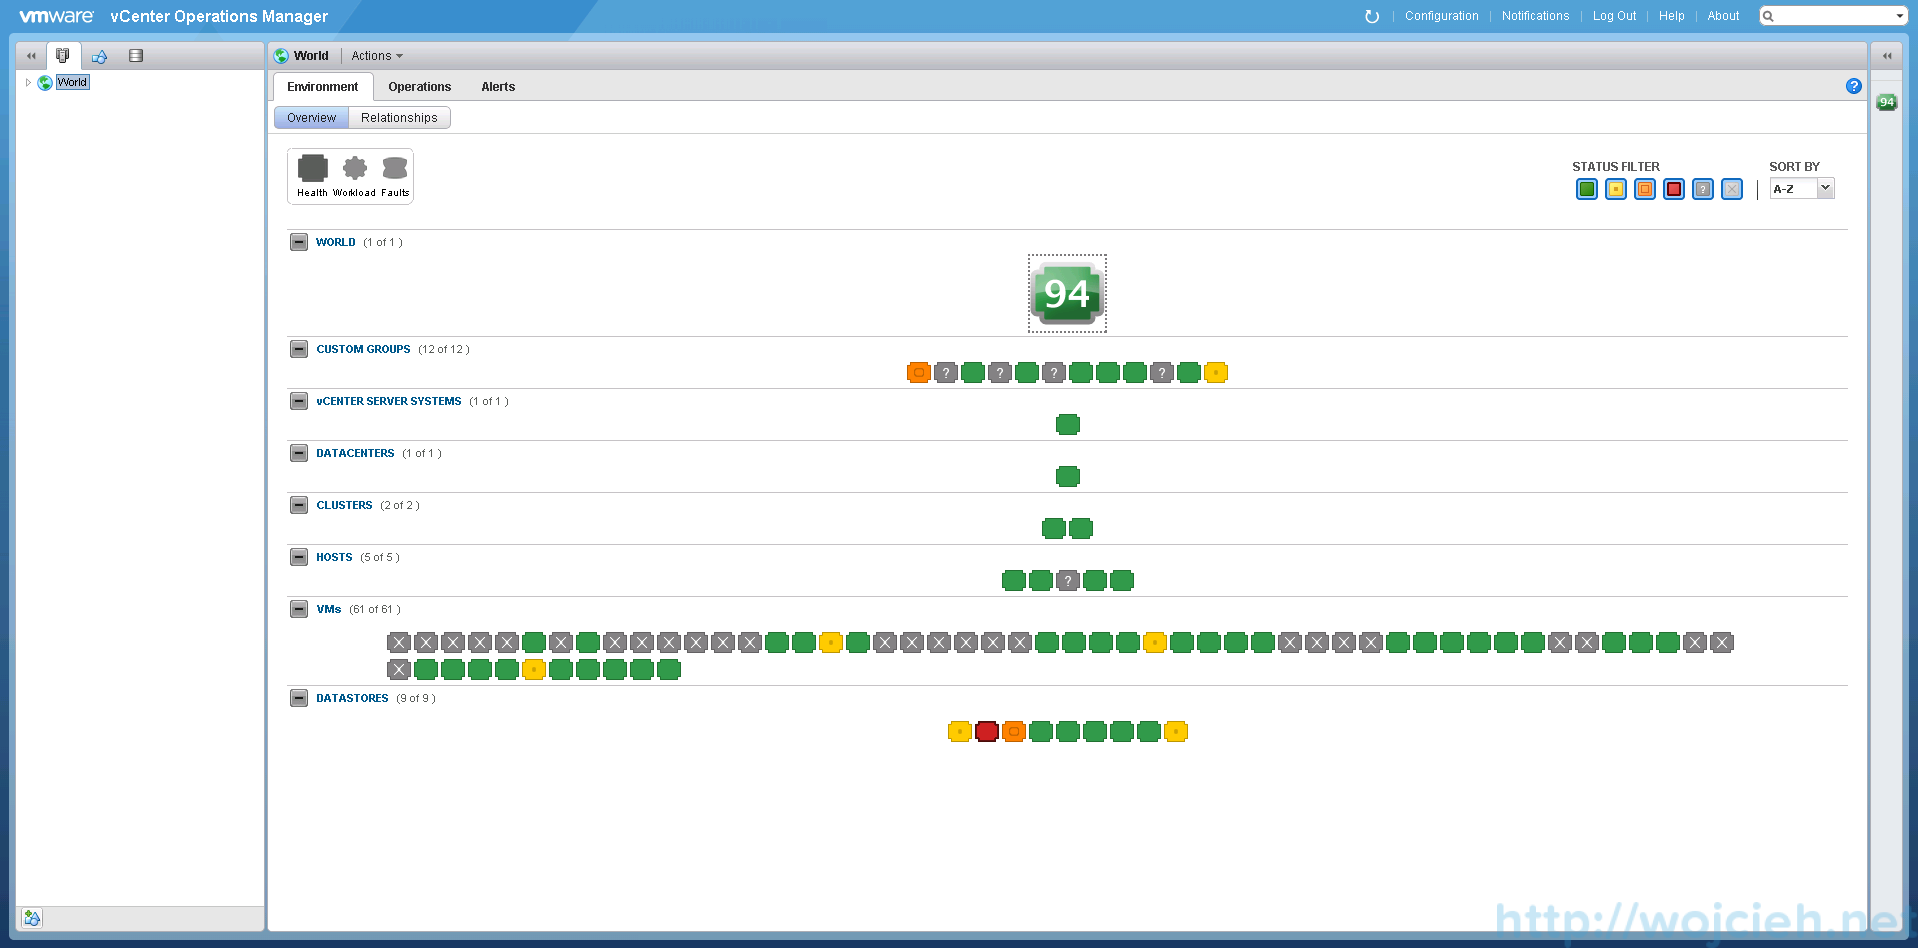 VMware vRealize Operations Manager - Usage 2